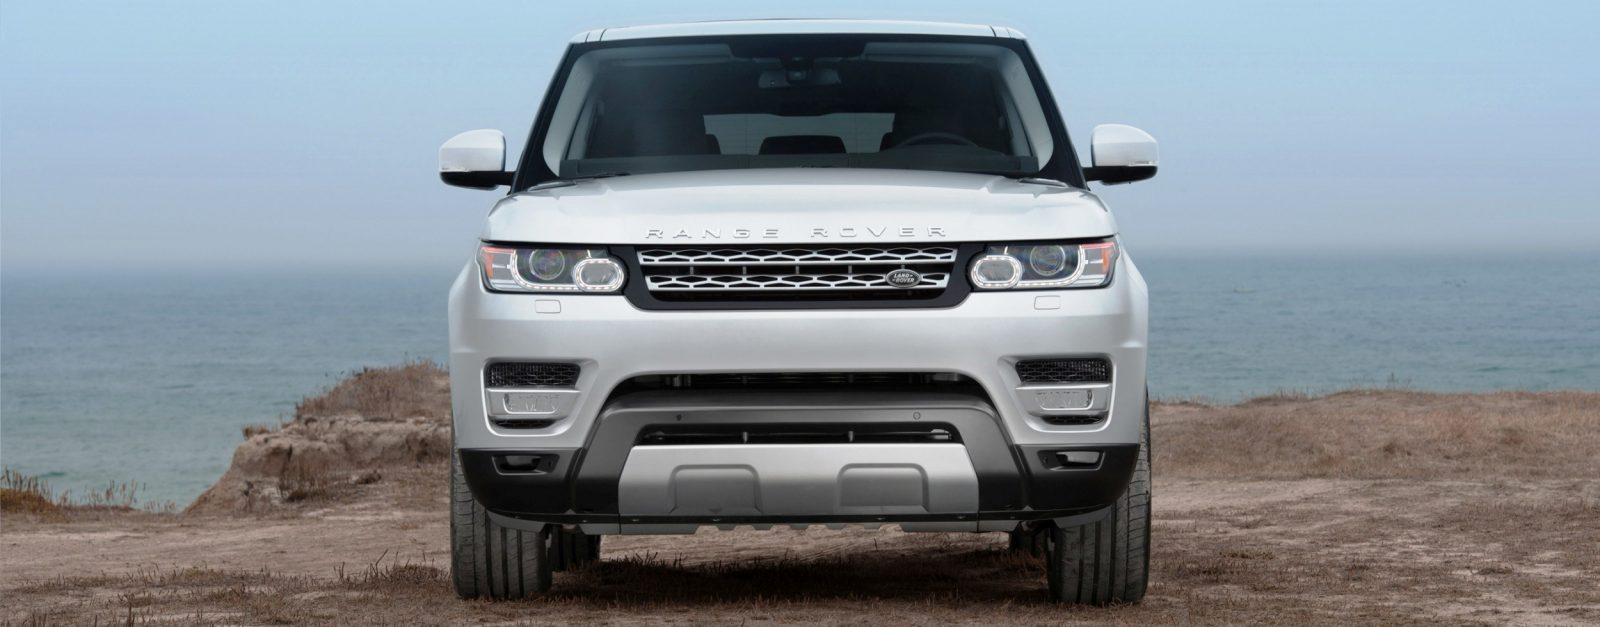 New Range Rover Sport HSE in 30 Fake-Life Photos 6